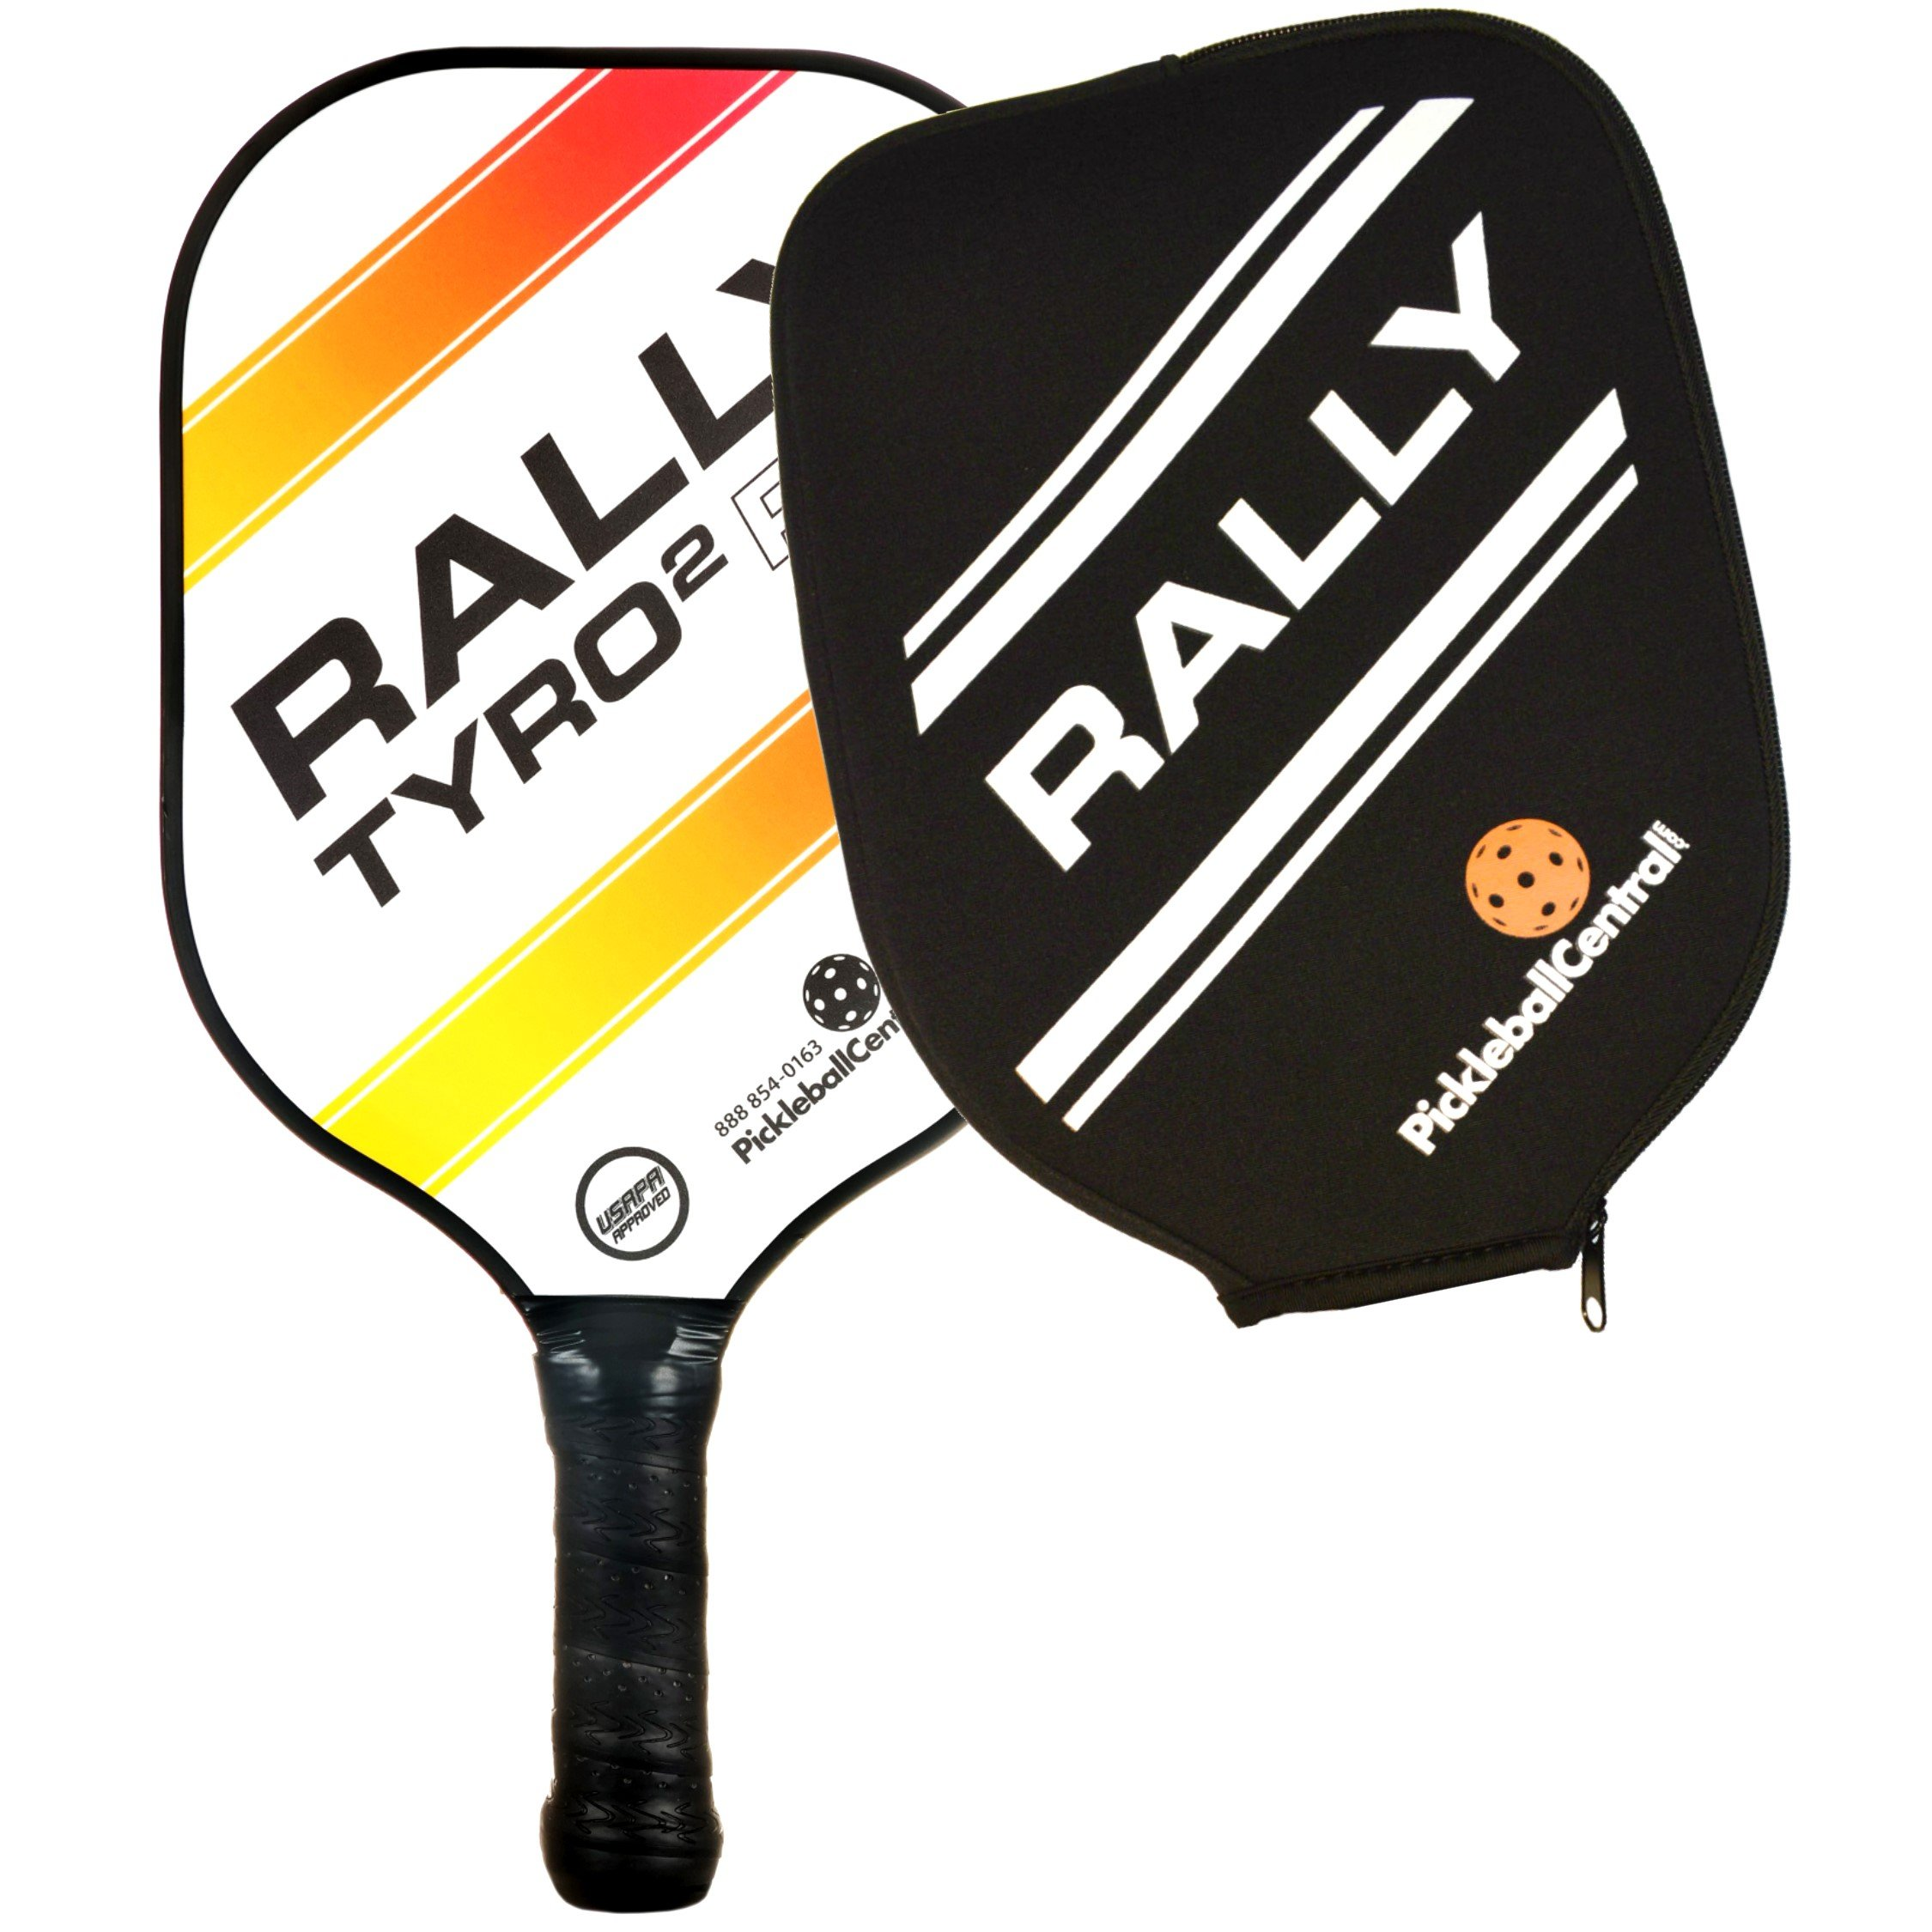 Rally Tyro 2 Pro Pickleball Paddle (1 Paddle/Cover) by PickleballCentral (Image #1)